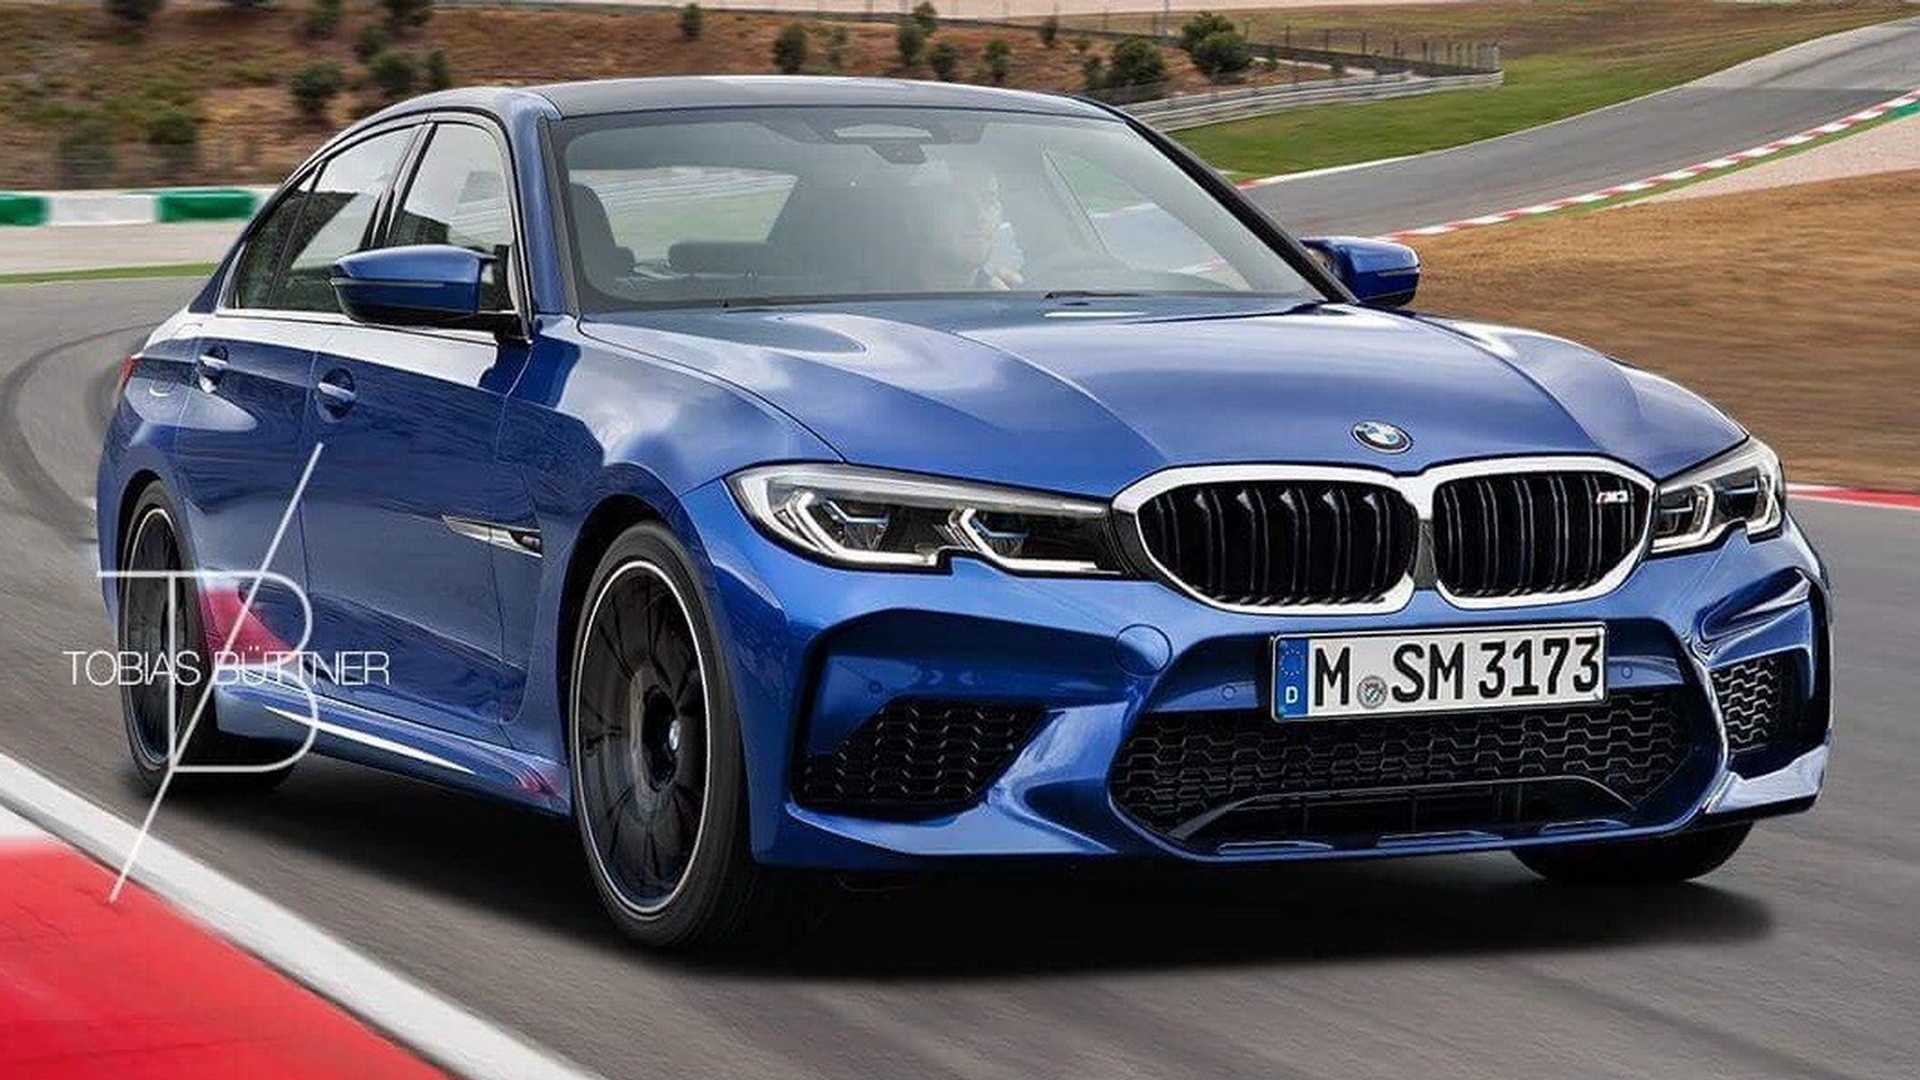 97 The Best BMW M3 2020 New Concept